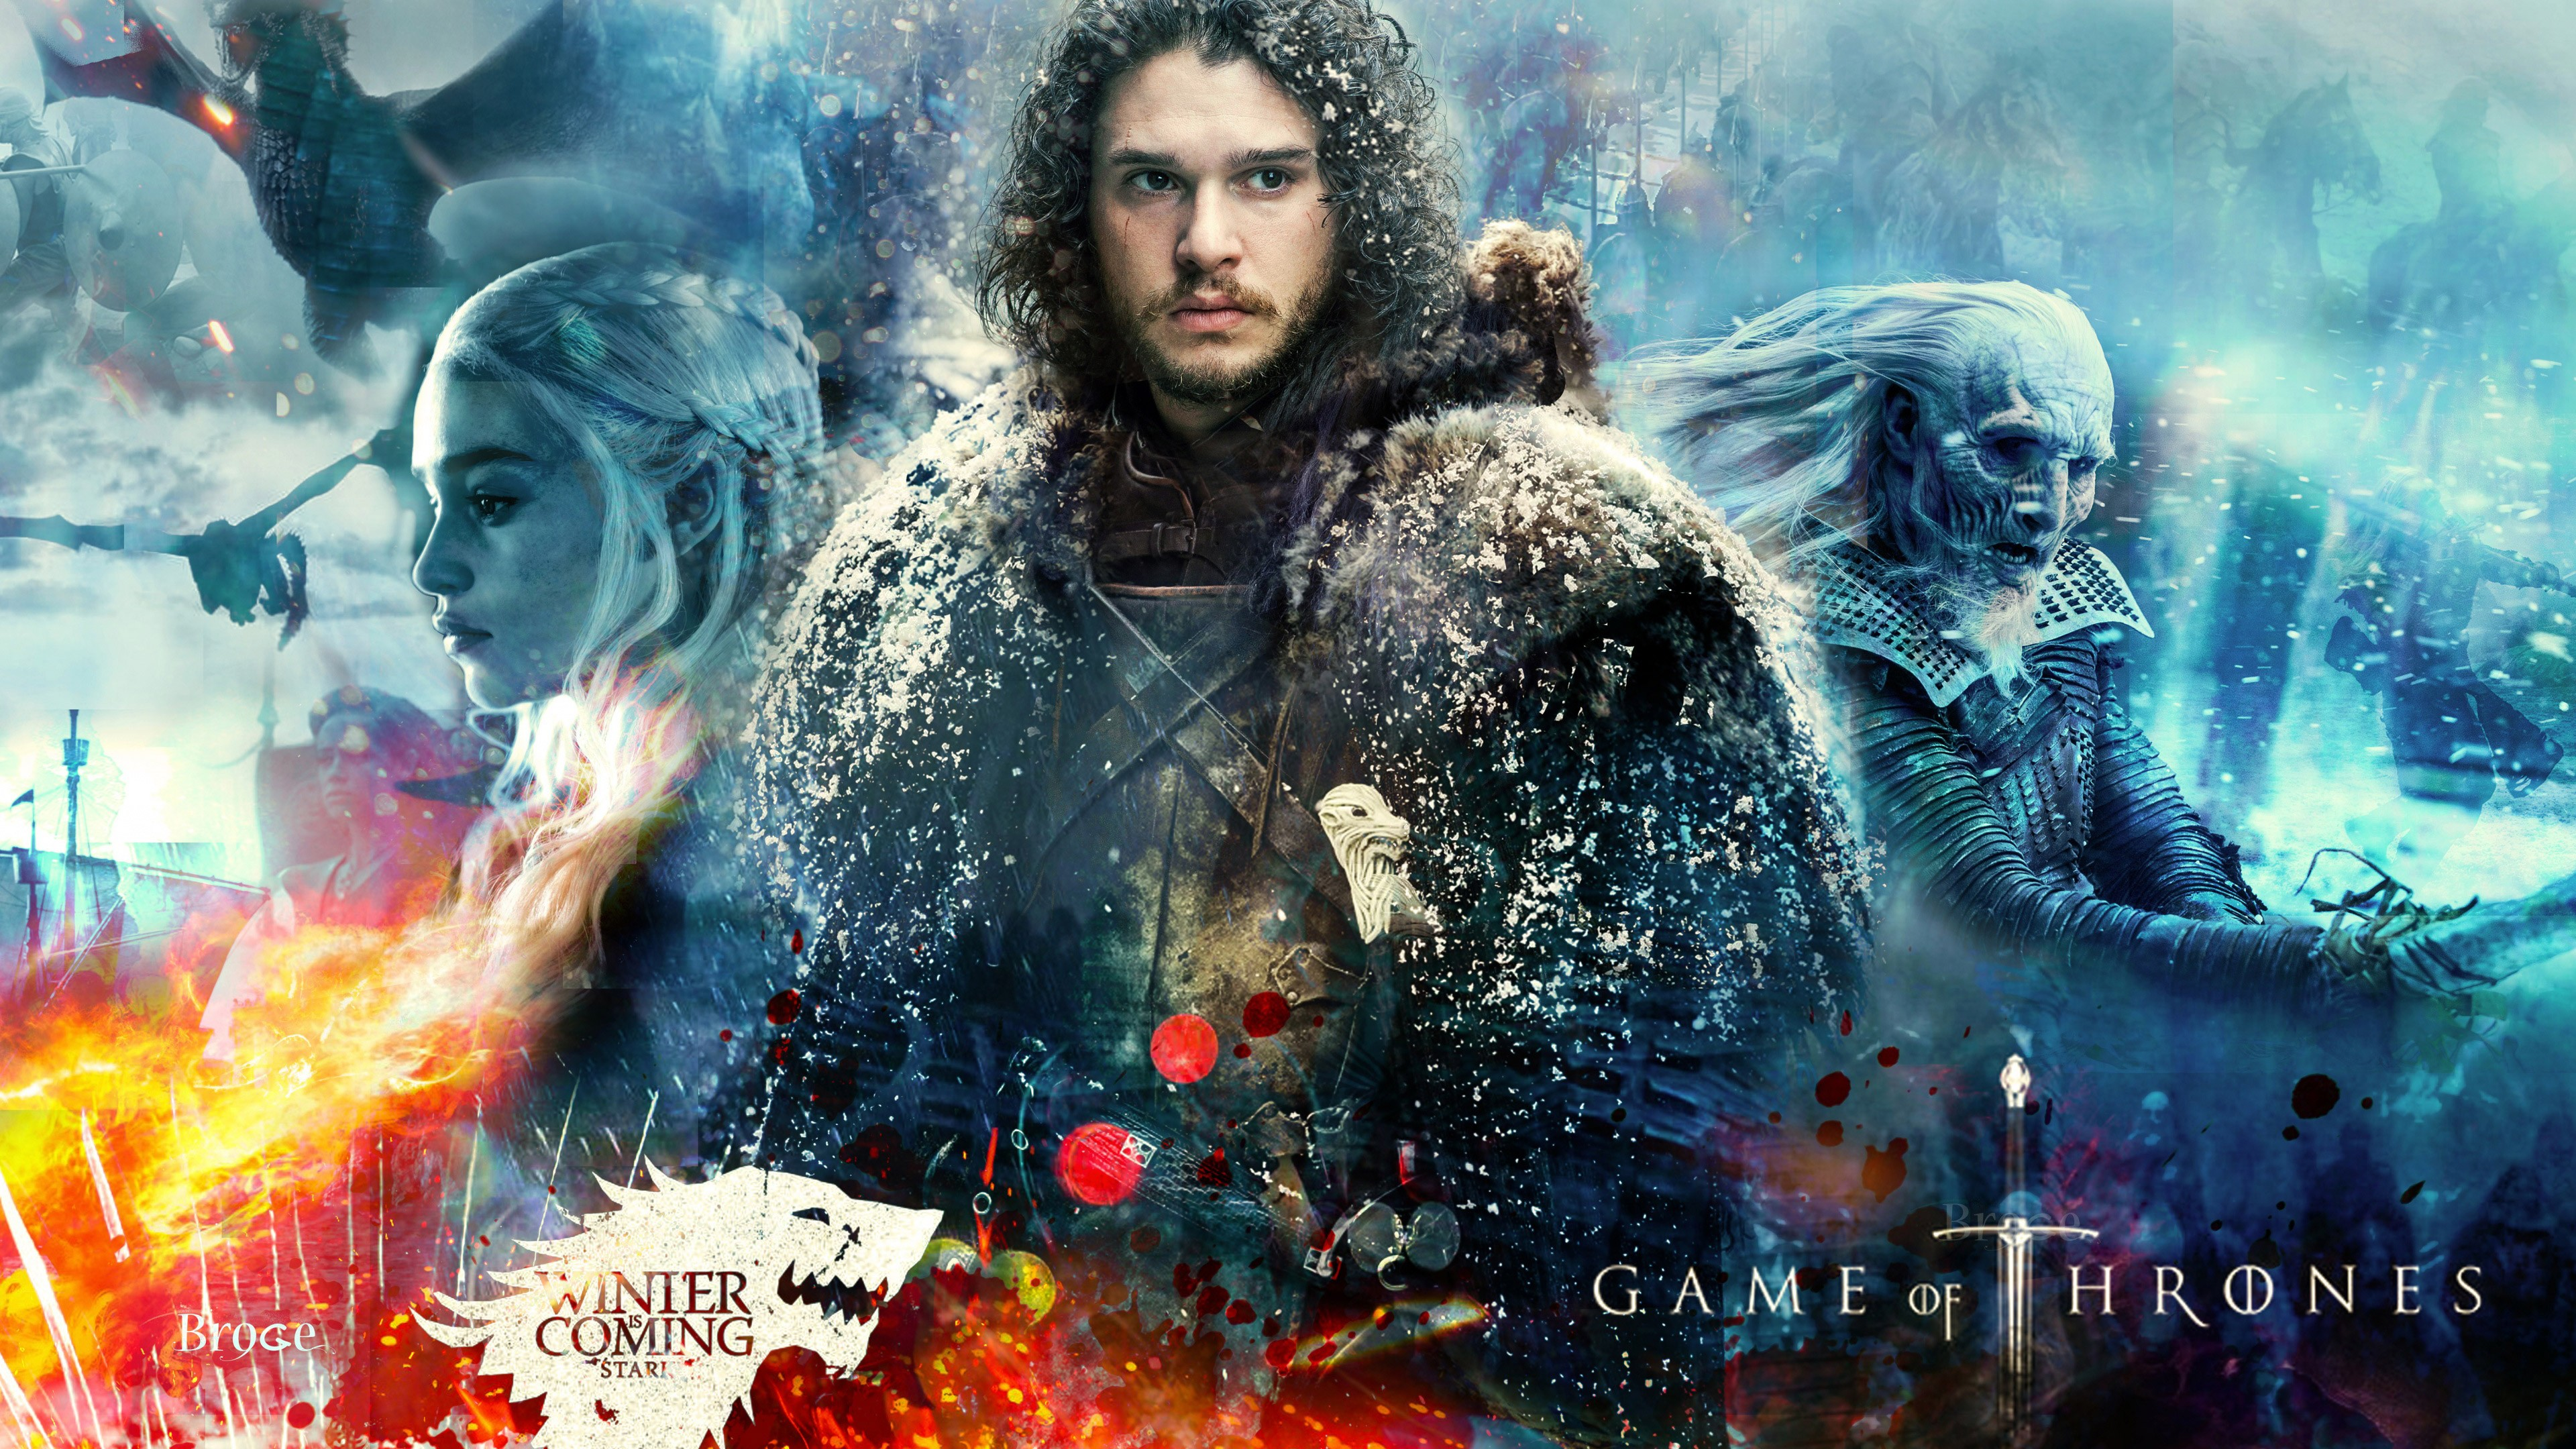 Wallpaper Game Of Thrones Season 7 Jon Snow Daenerys Targaryen